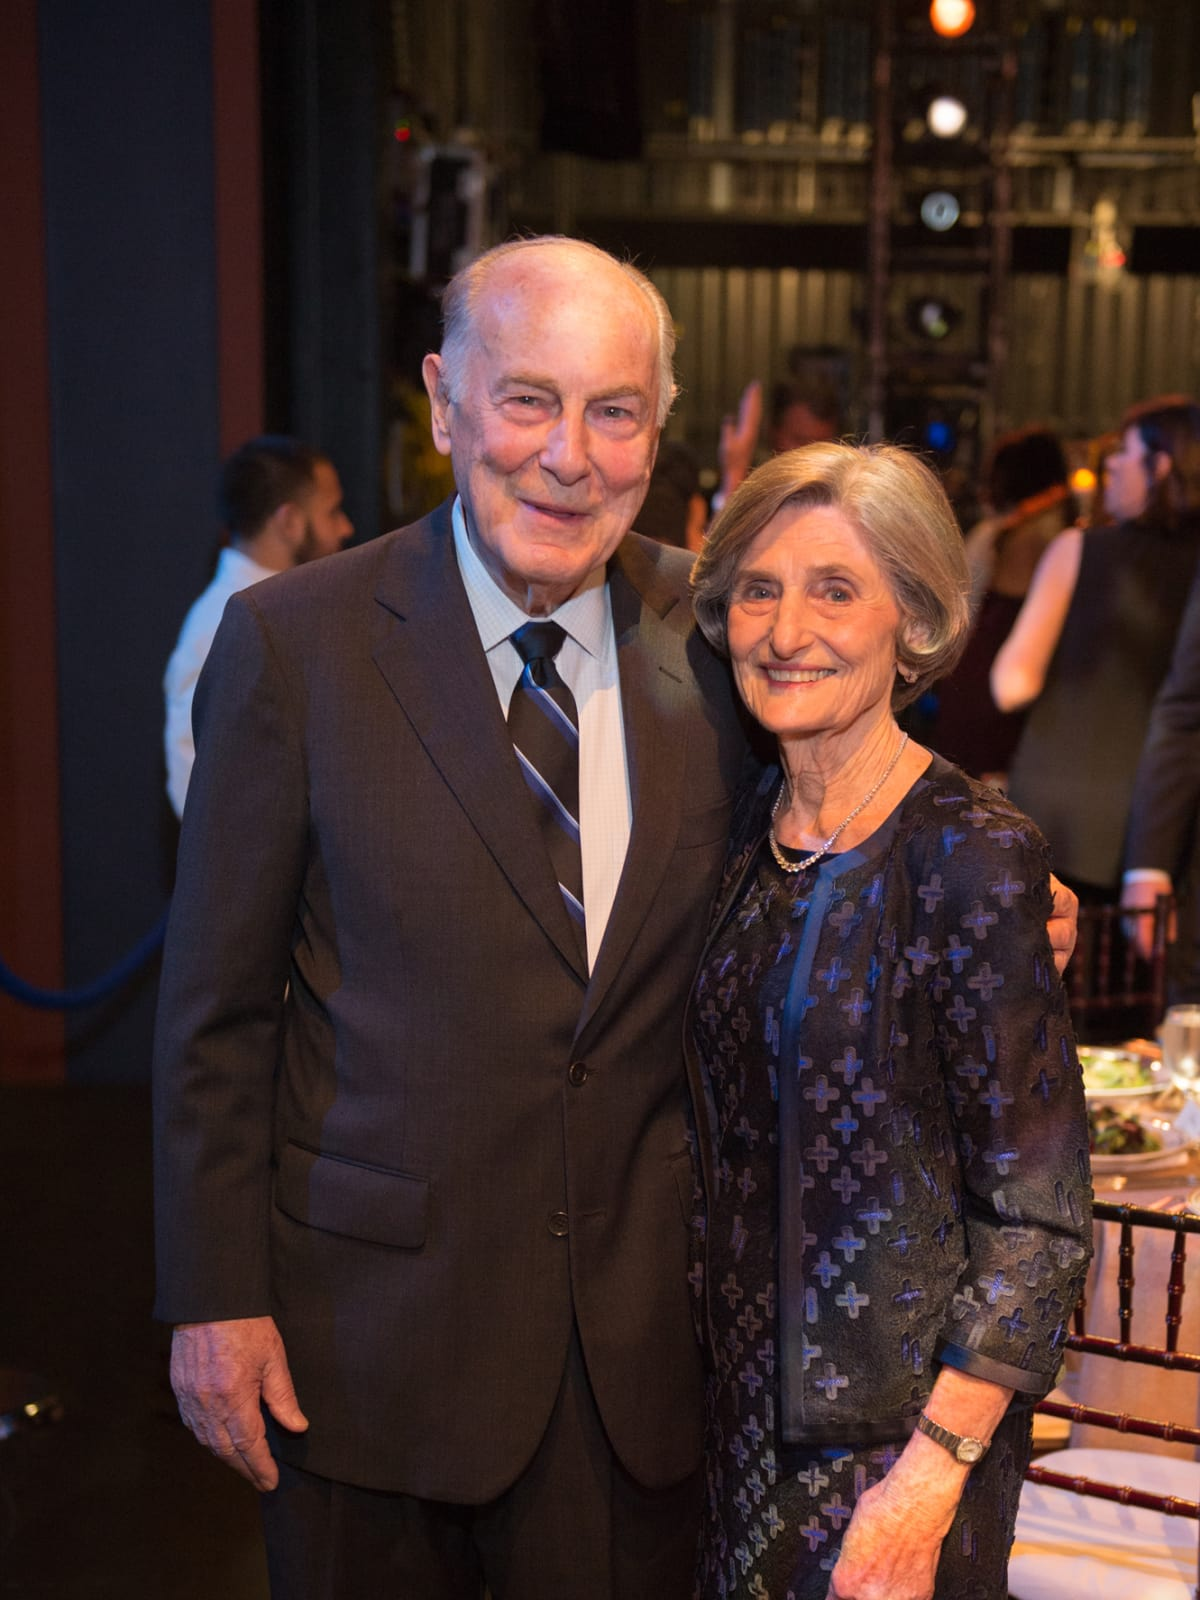 Ted and Melza Barr at Houston Ballet Opening Night dinner